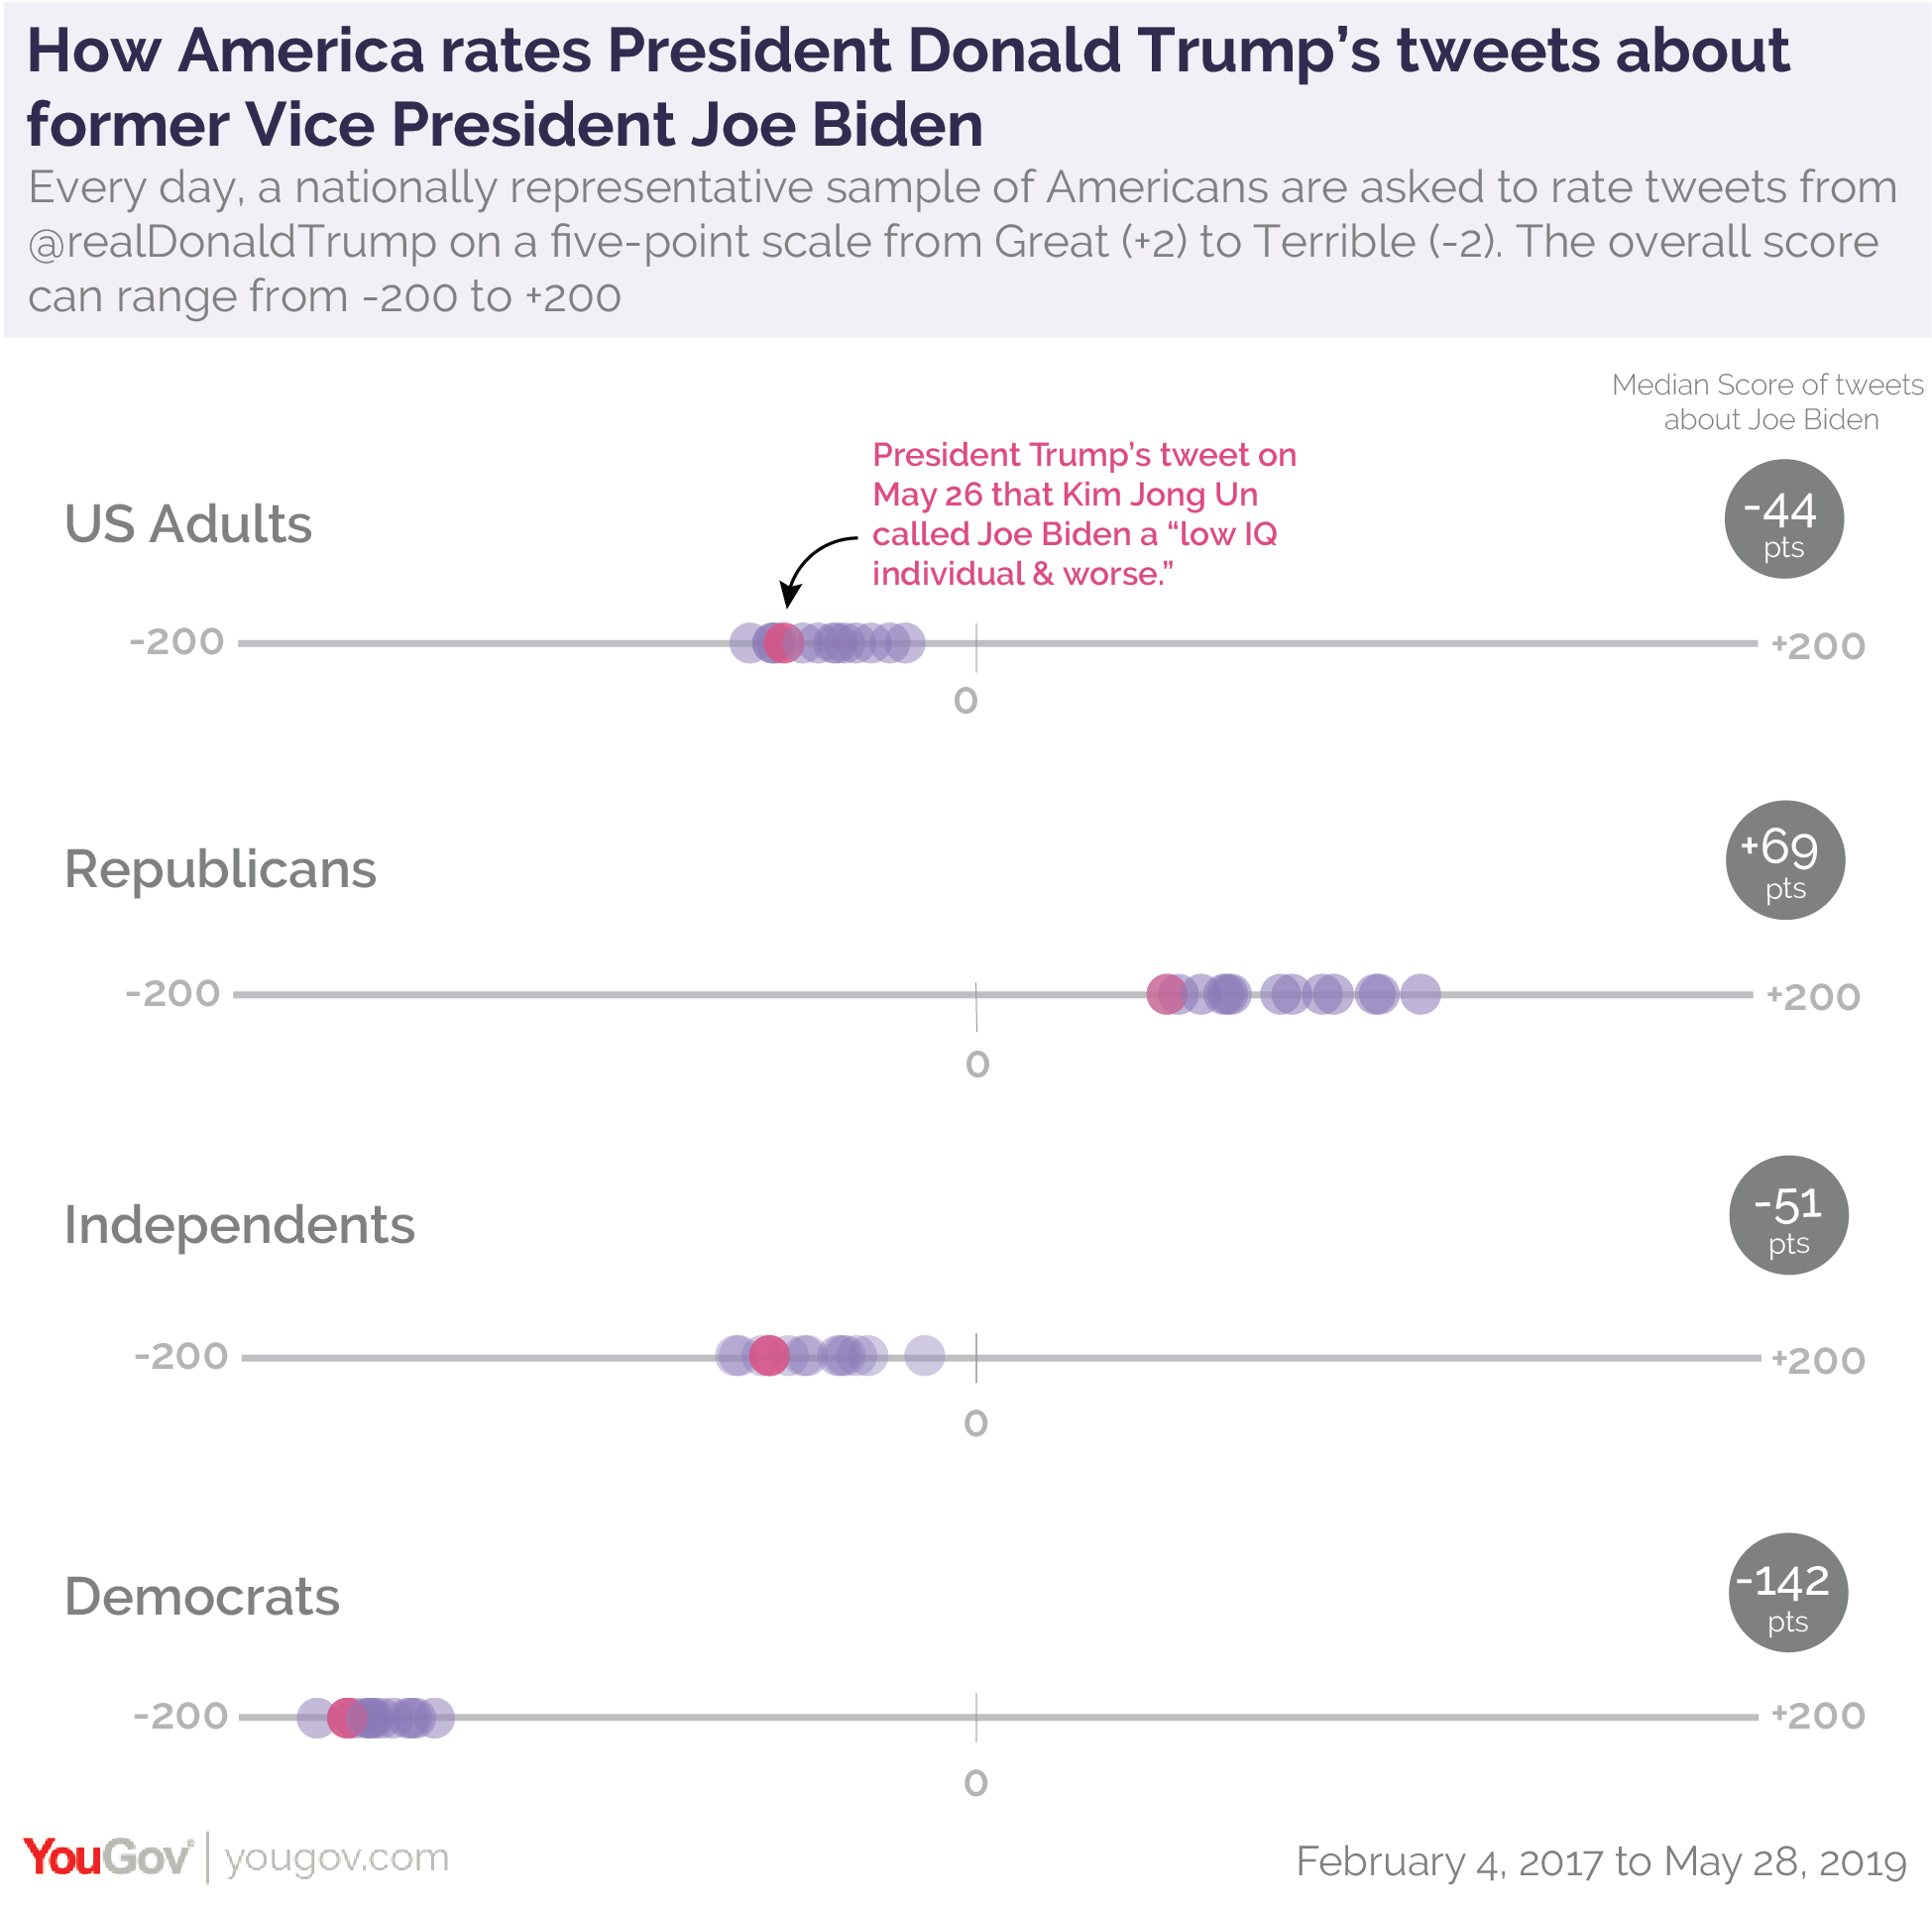 How America rates President Donald Trump's tweets that mention former Vice President Joe Biden